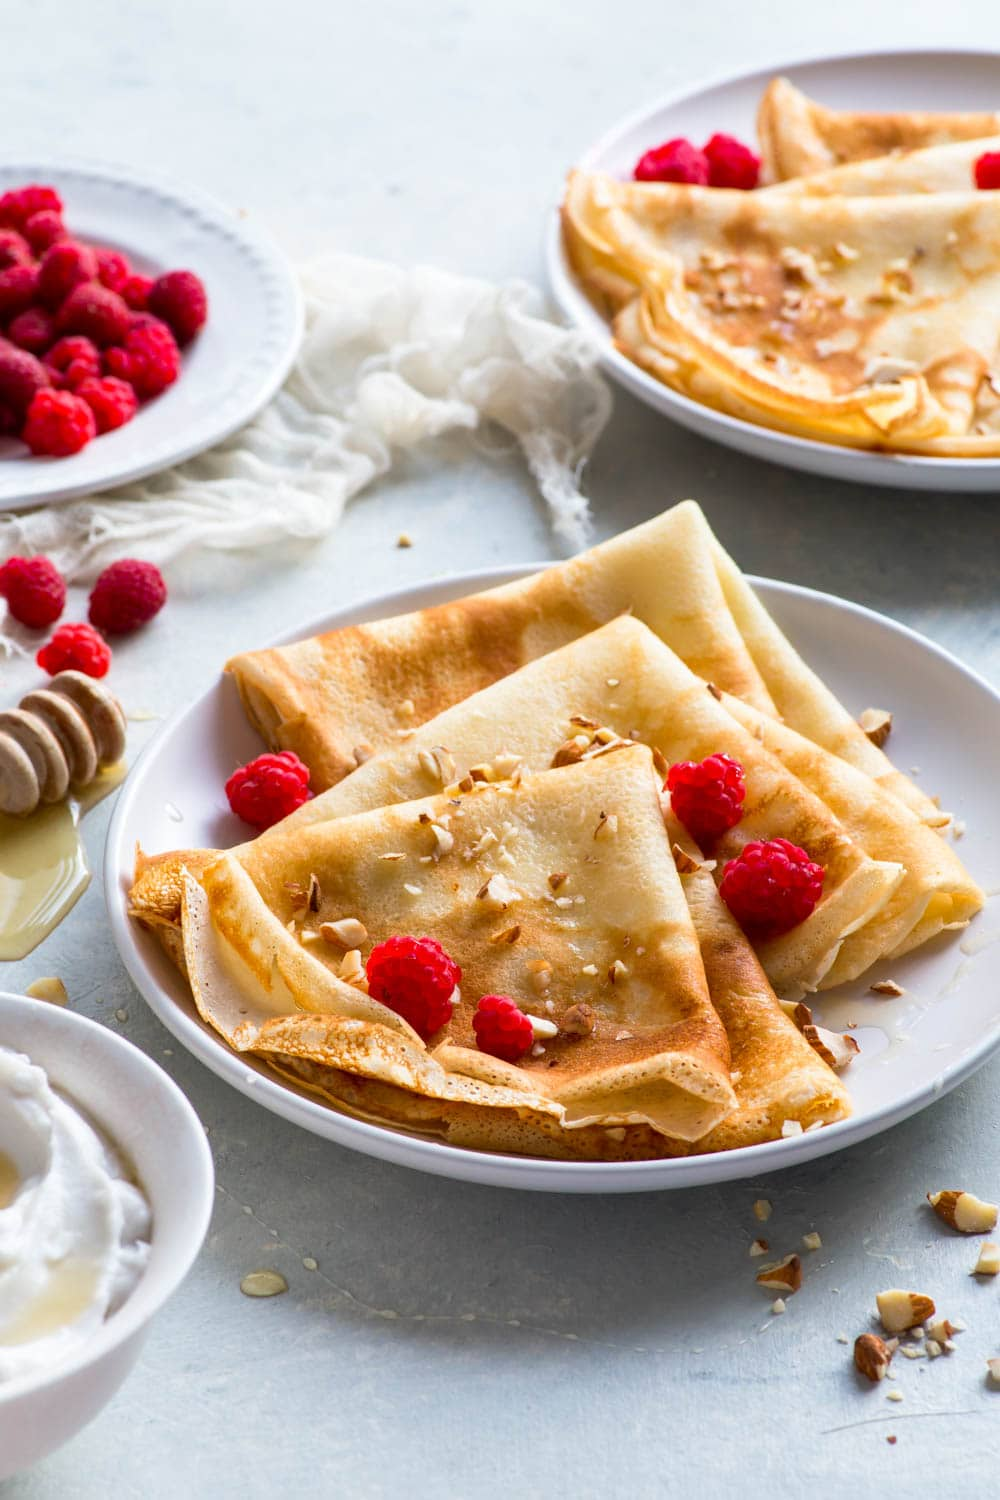 Gluten free crepes, folded into triangles, on a plate, drizzled with honey, sprinkled with chopped nuts and served with coconut cream and fresh raspberries.